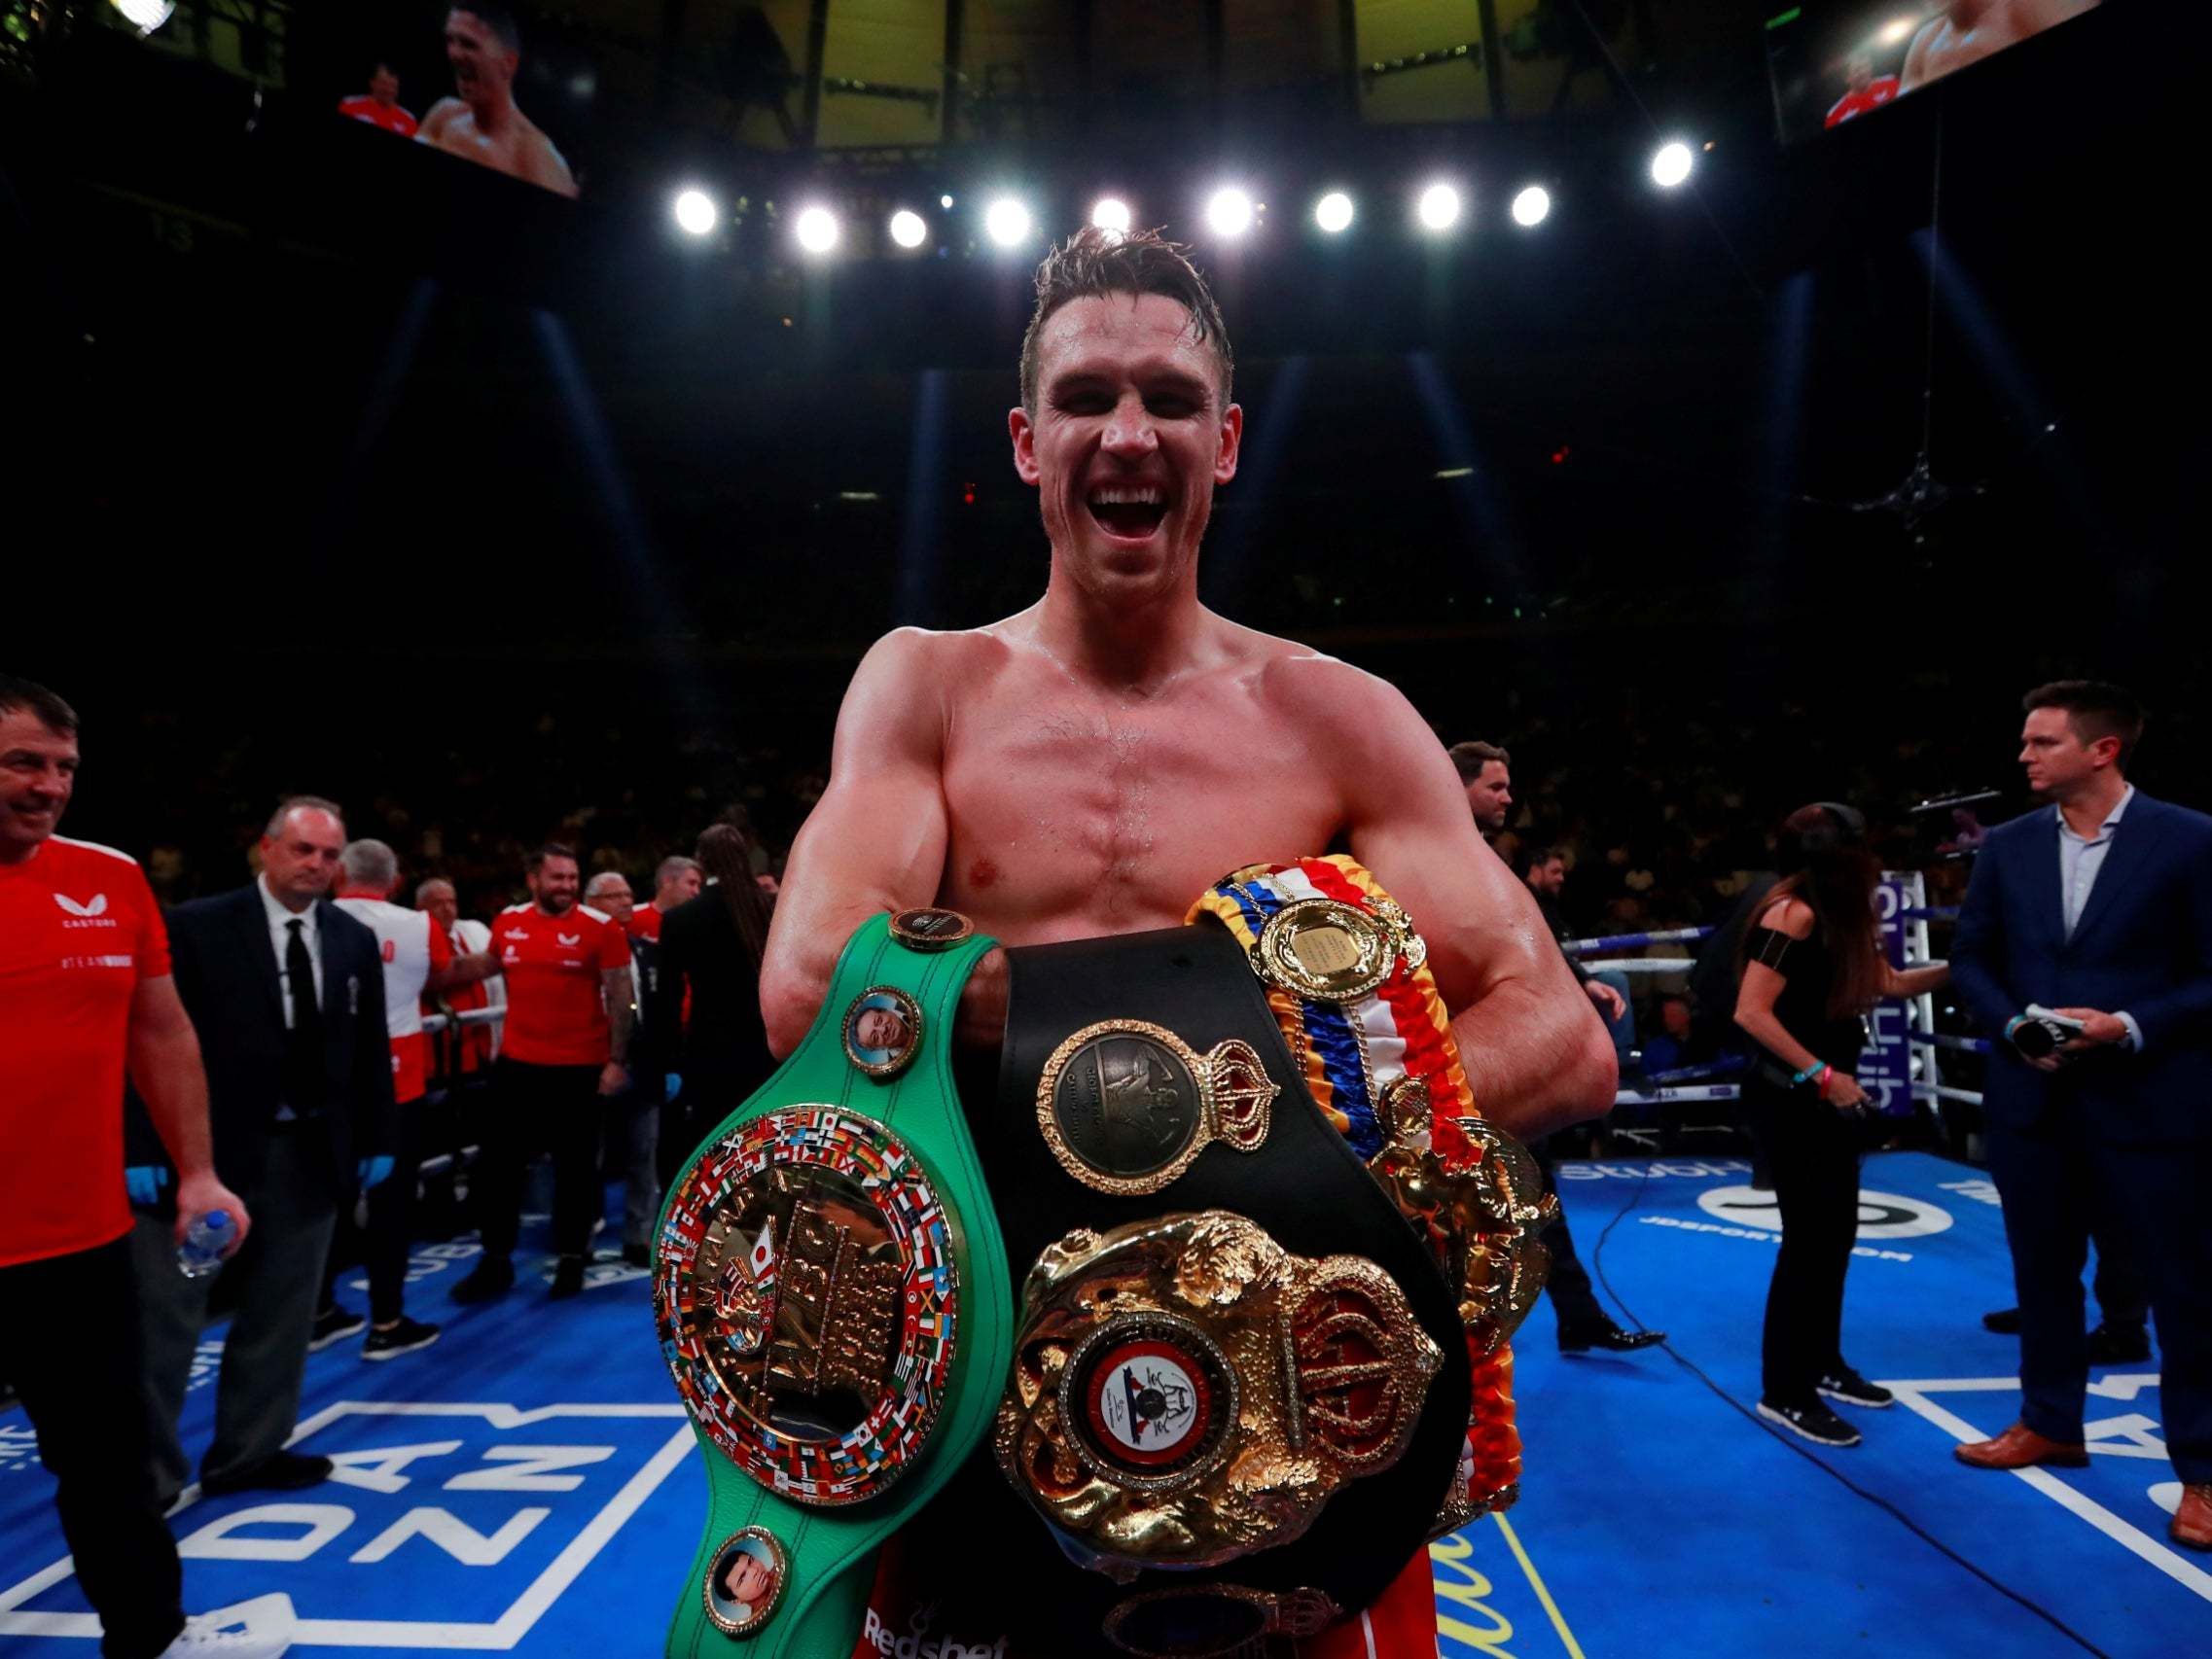 Callum Smith vs Hassan N'Dam fight result: Liverpool boxer powers through first title defence | The Independent | The Independent